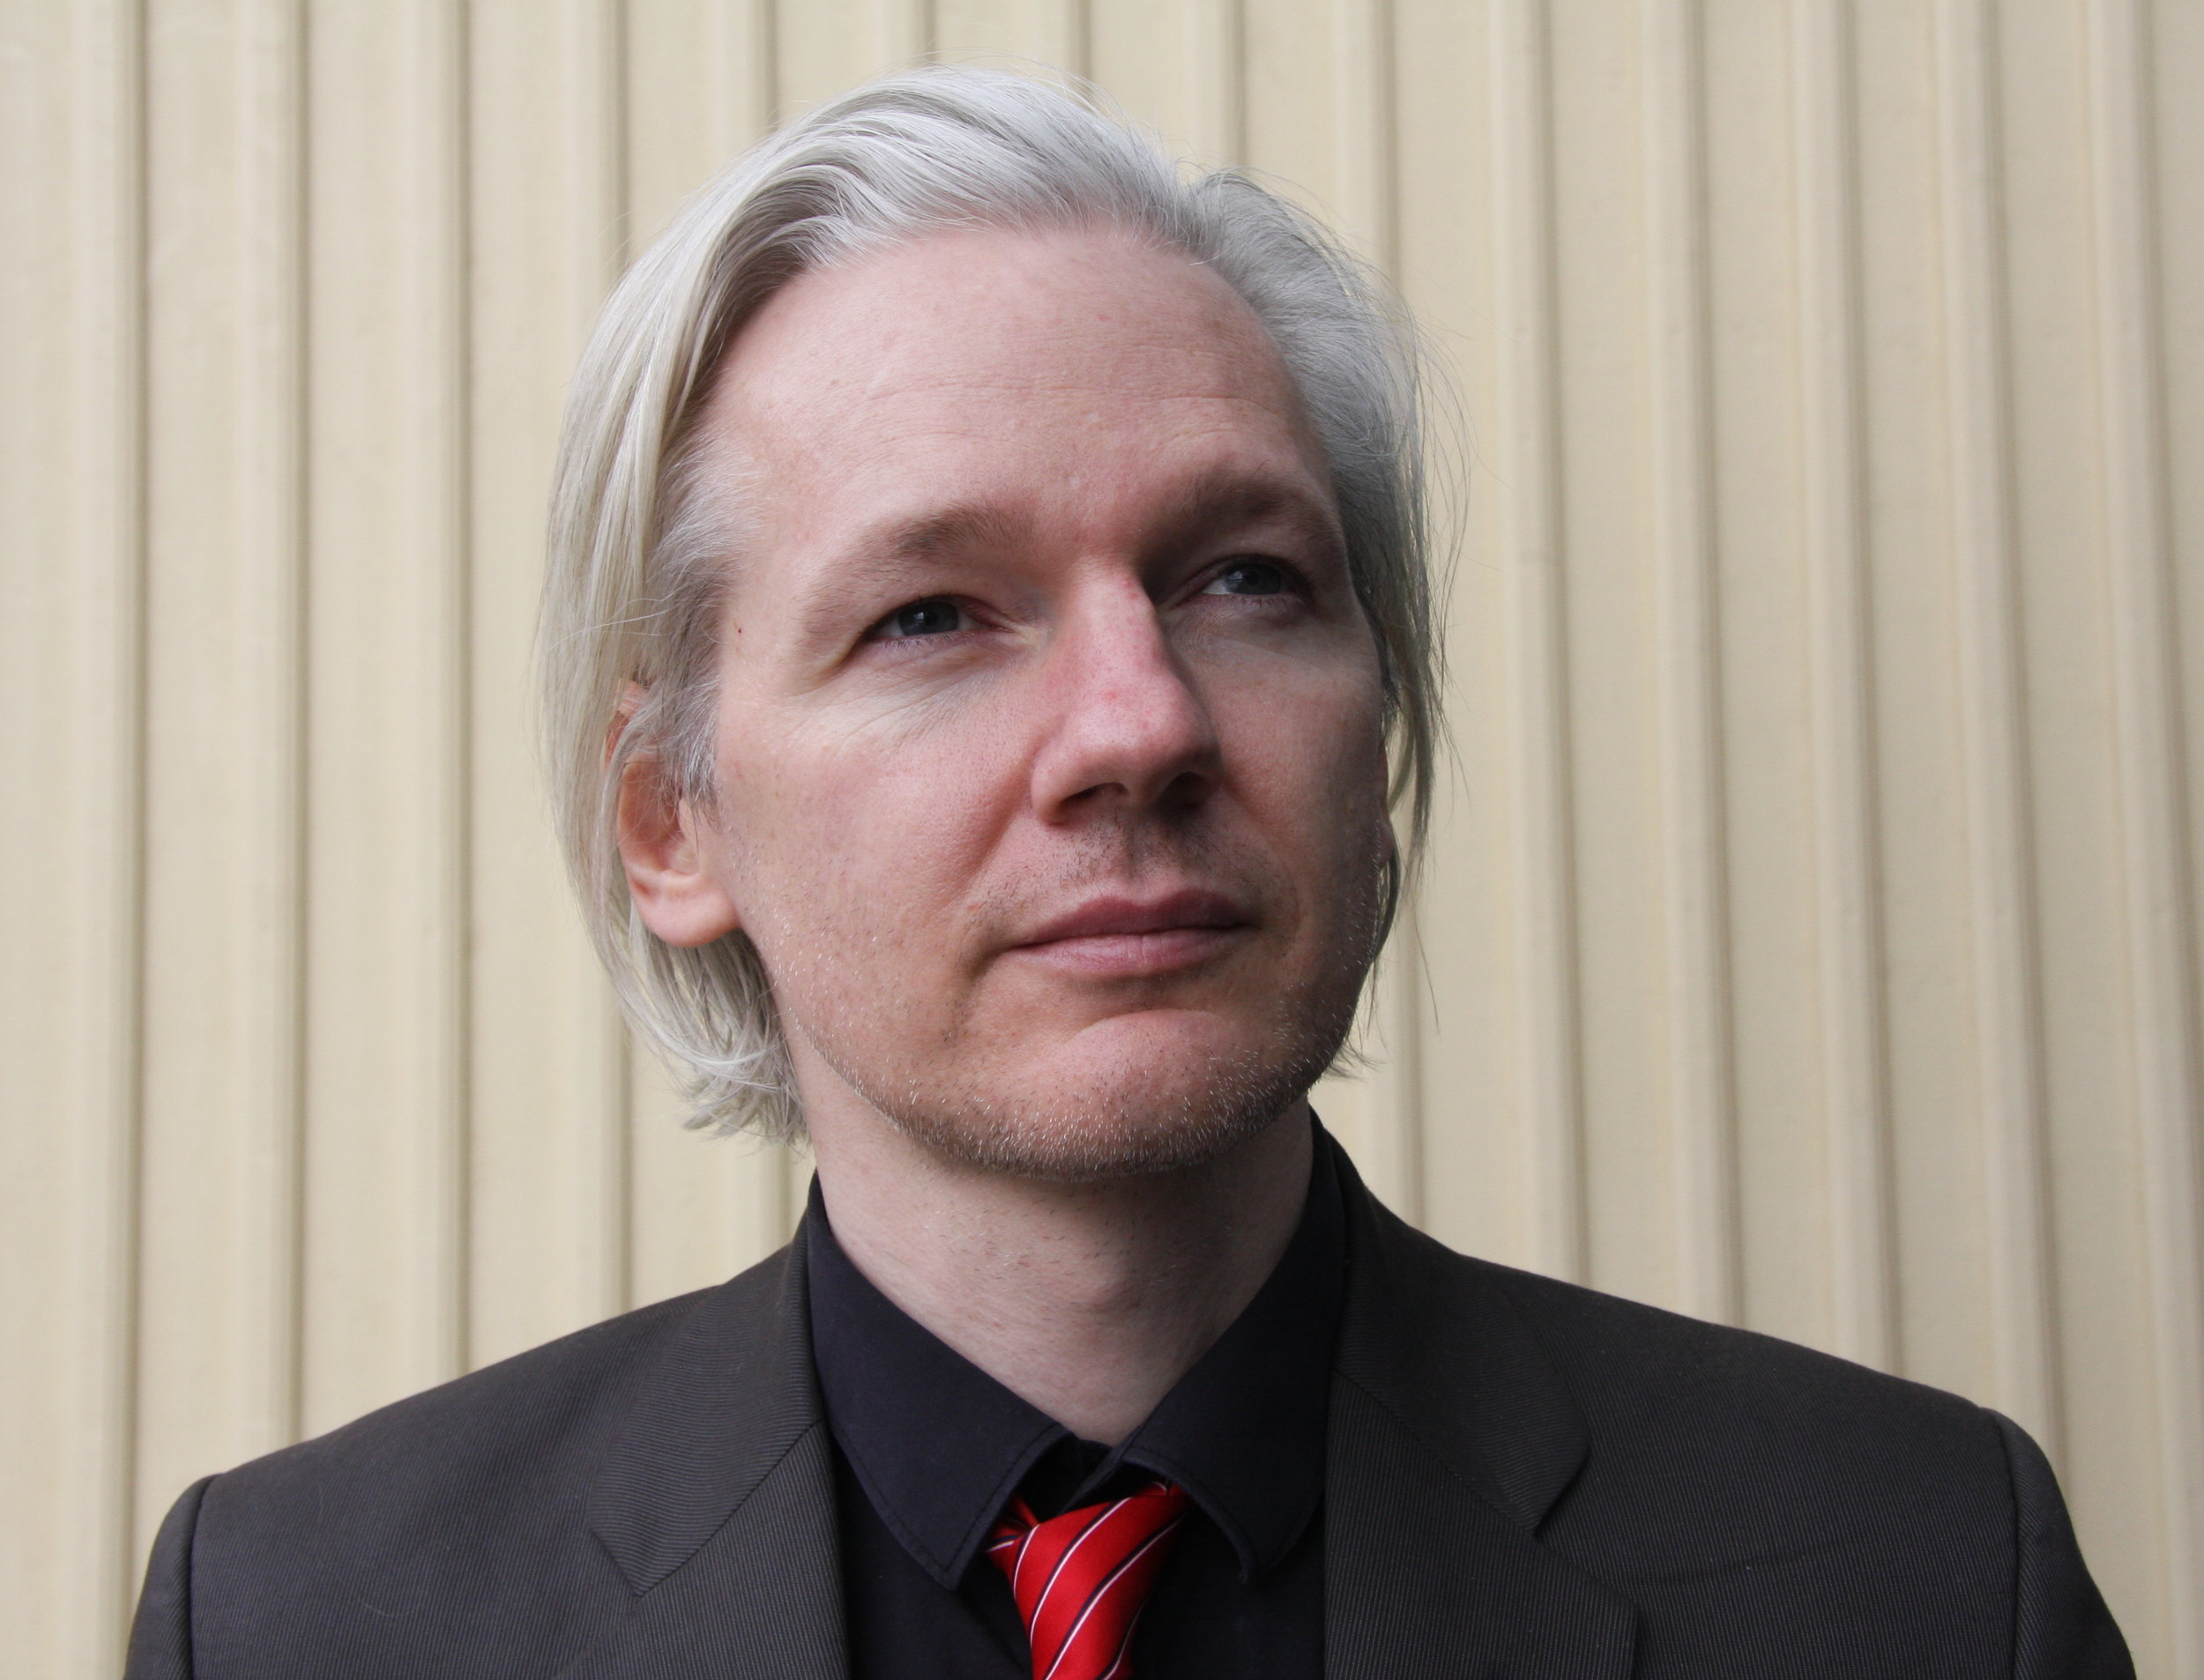 Julian Assange, March 2010 (Wikimedia Commons)